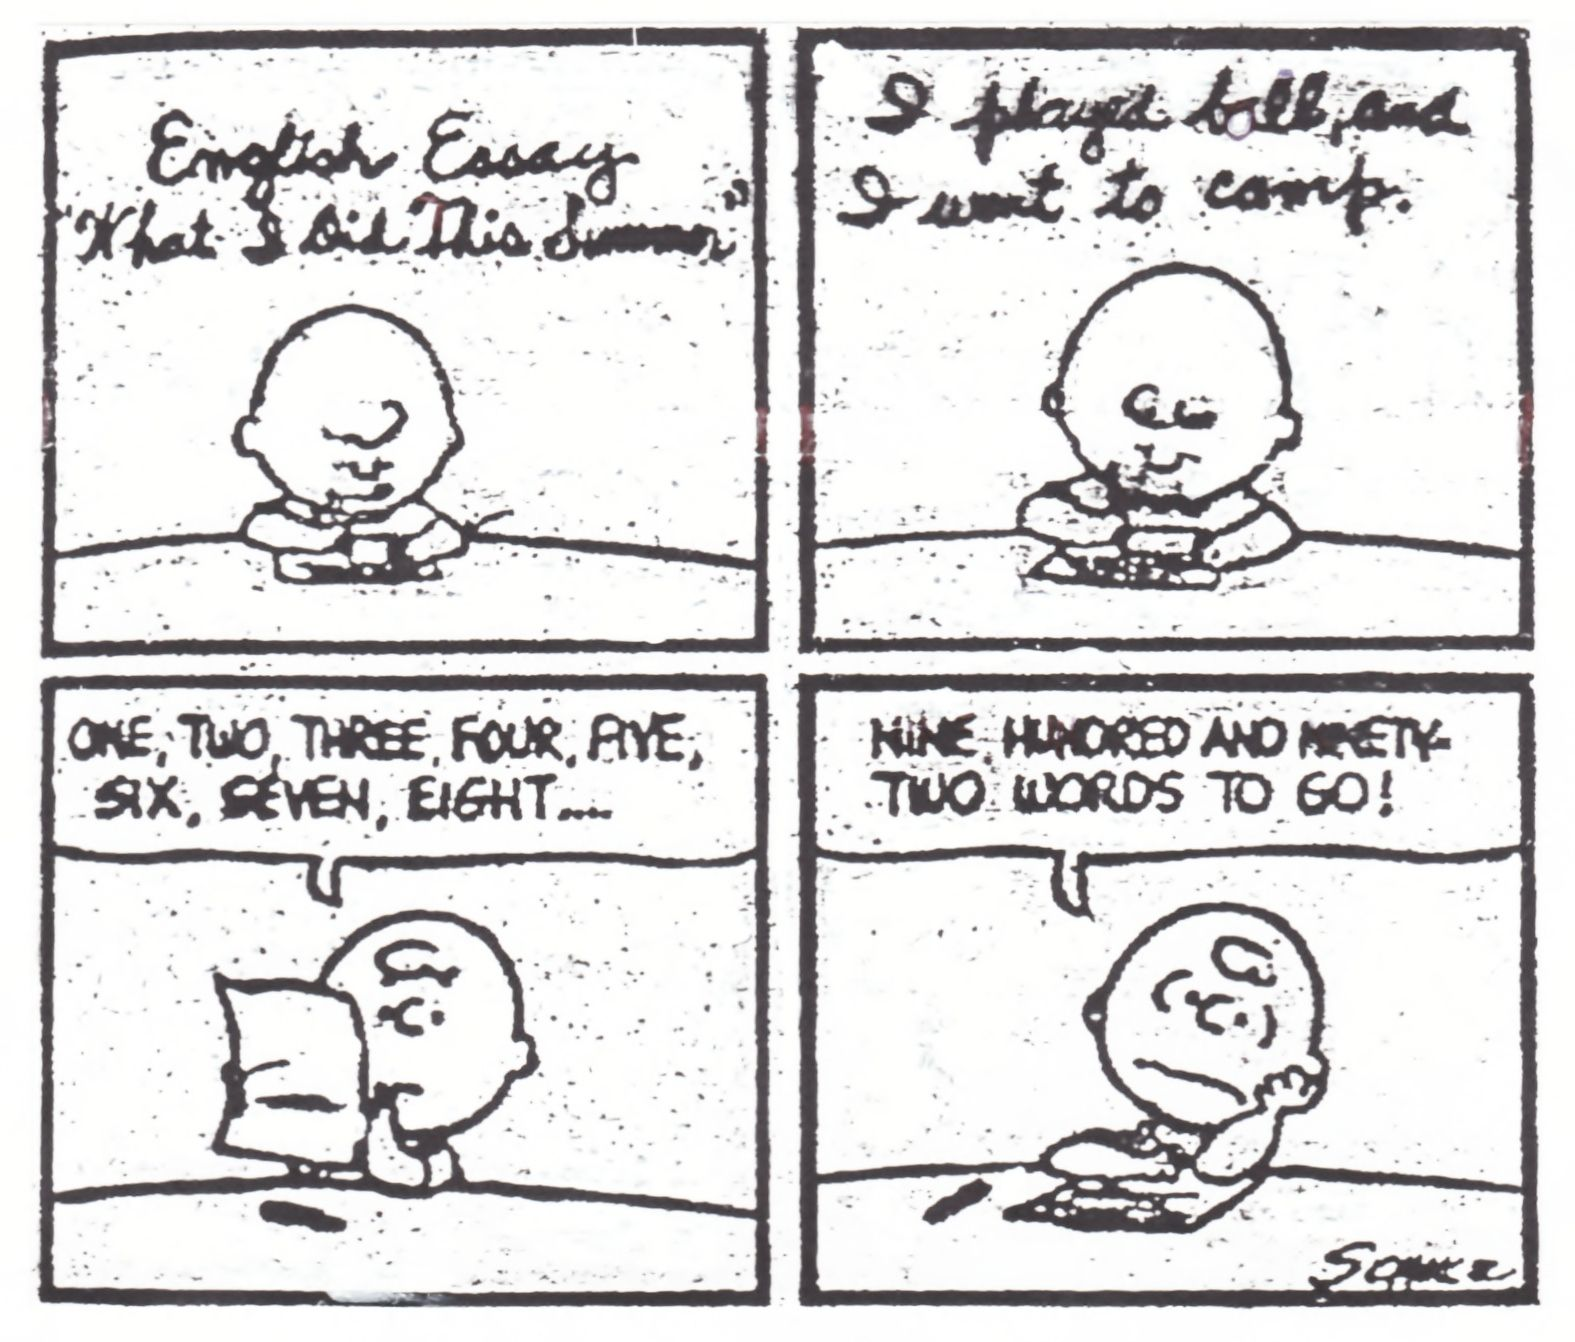 Essay For India Essay Writing Techniques Peanuts Comic Strip With Charlie Brown Beginning  To Write An Essay  Carpe Diem Essay also How To Make A Bibliography For An Essay Peanuts Comic Strip With Charlie Brown Beginning To Write An Essay  Personality Traits Essay